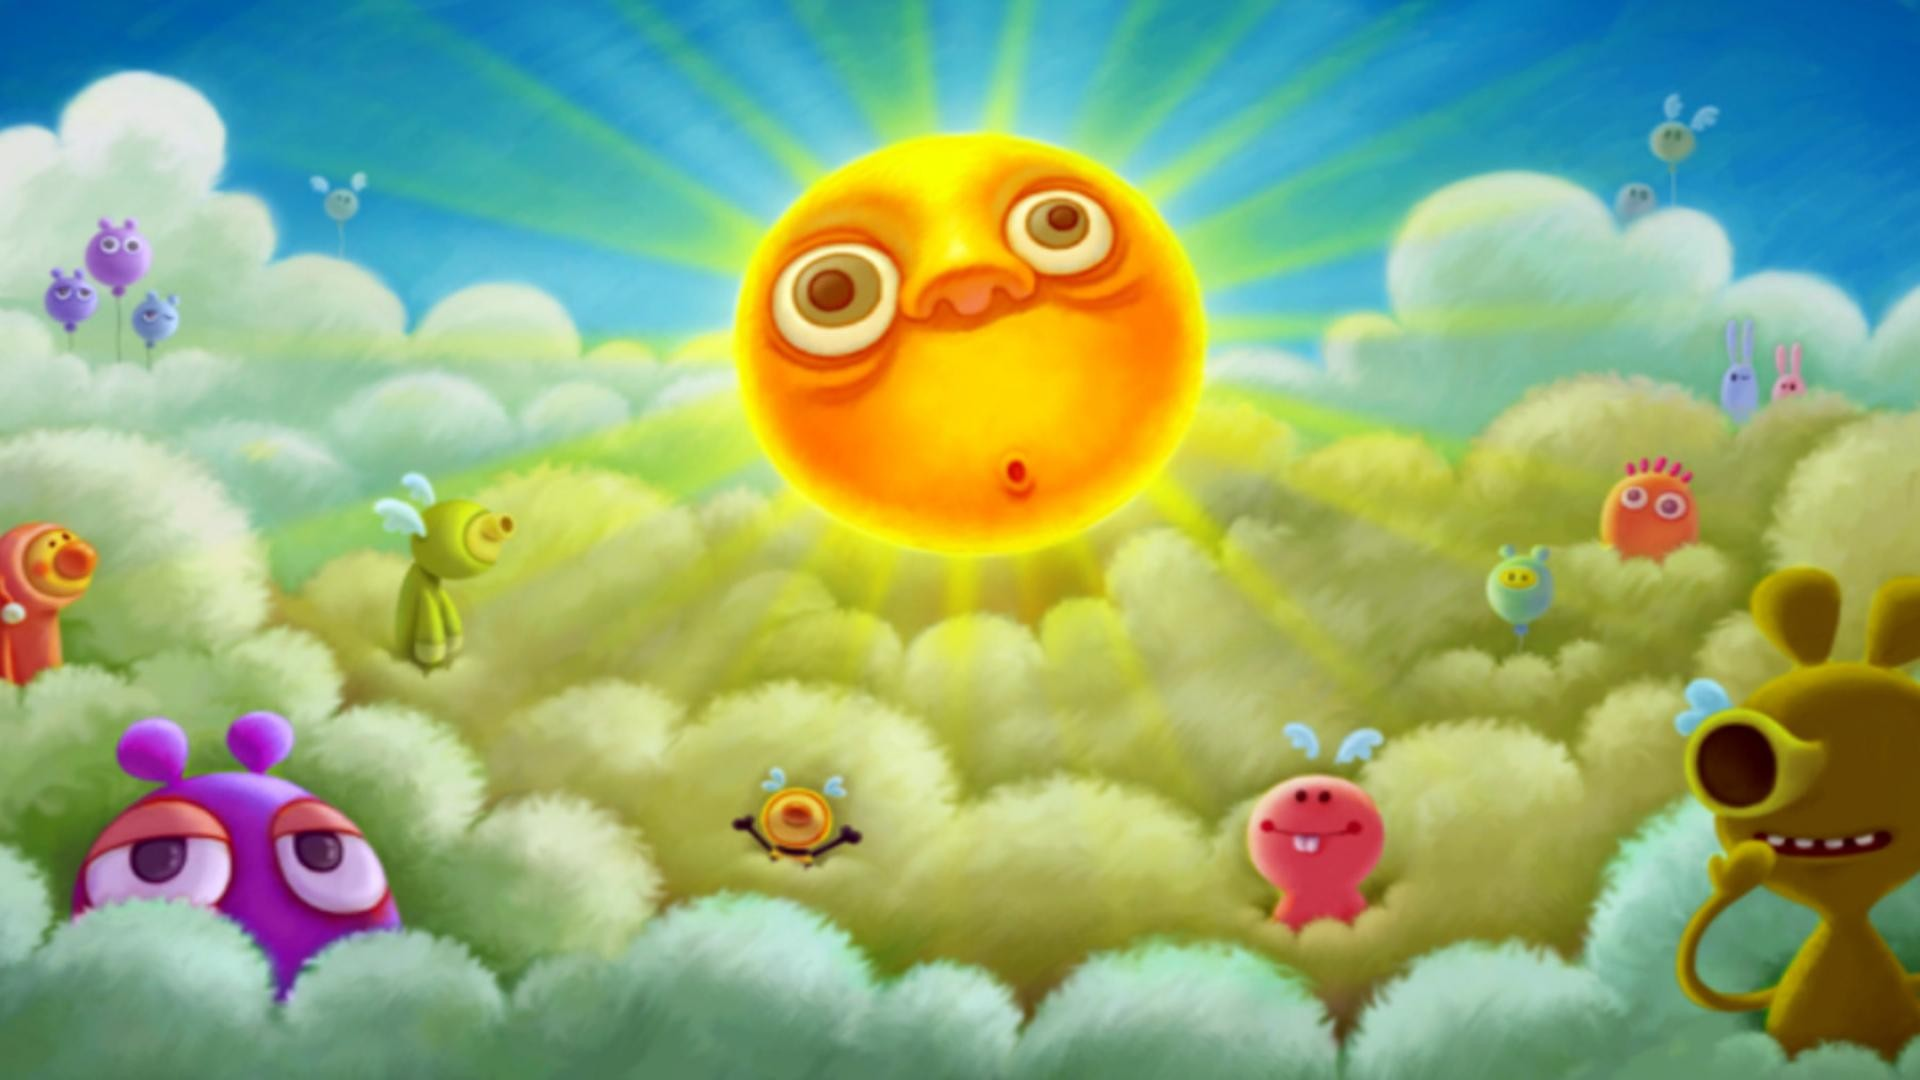 Cute Animated HD Wallpapers